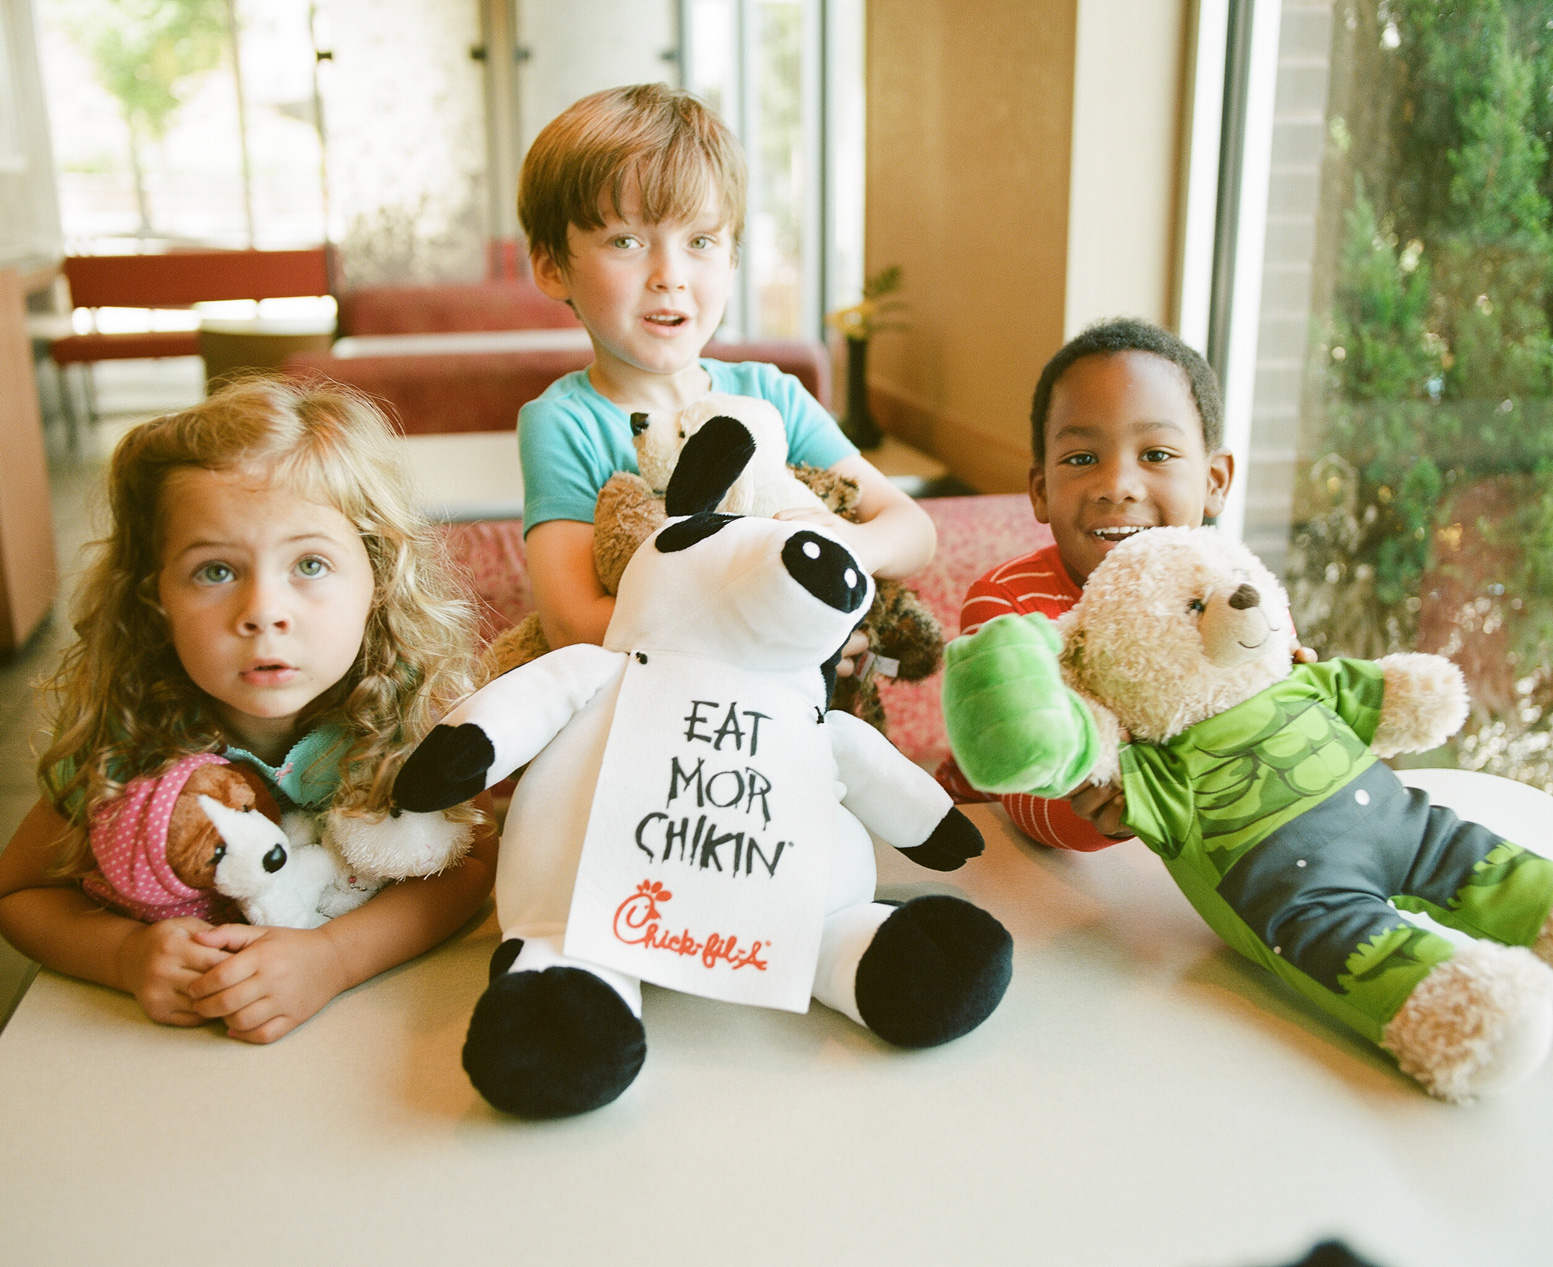 Goodnight Cow A Sleepover for Stuffed Animals